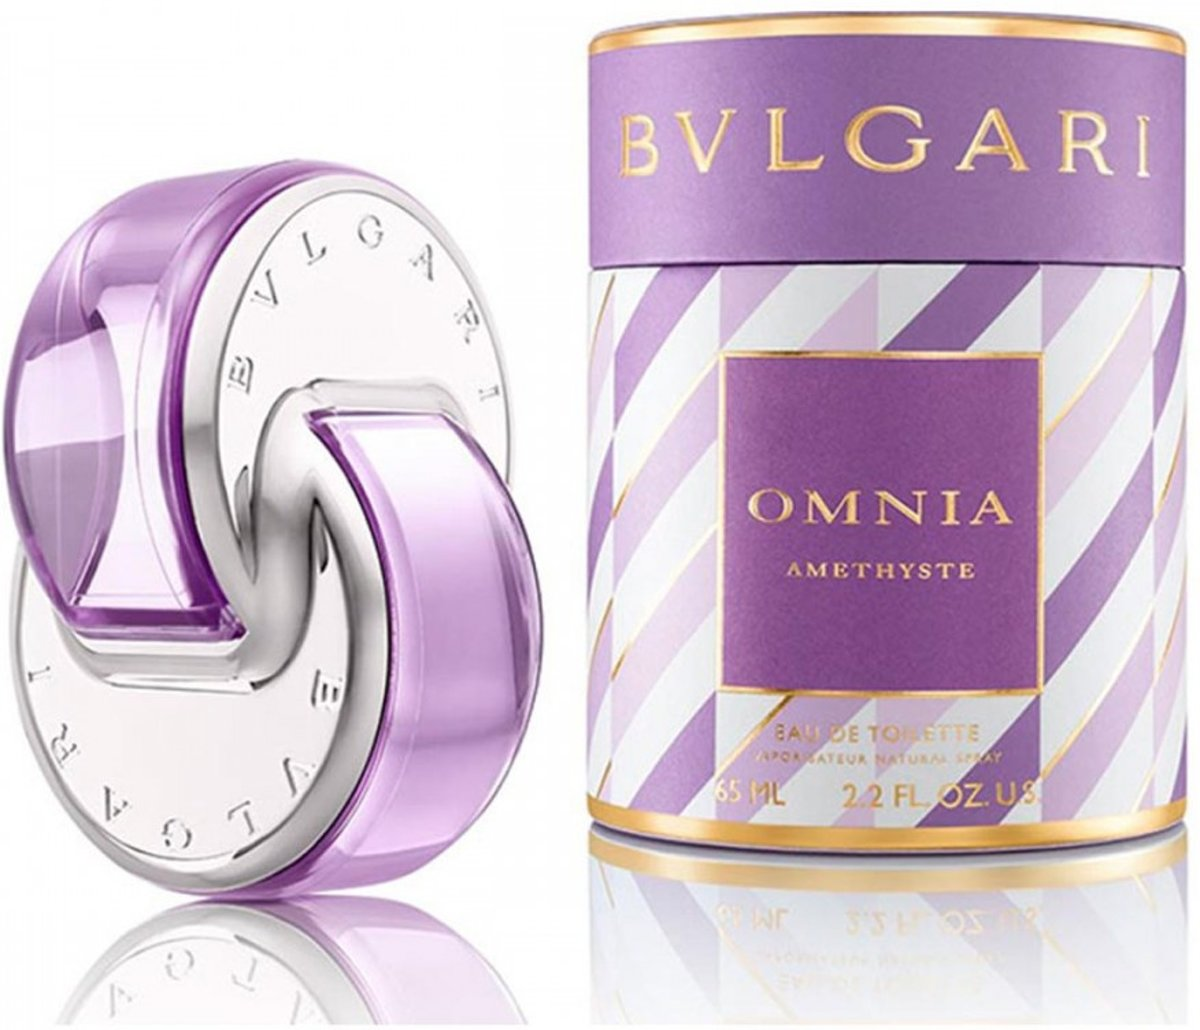 Bvlgari 65ml spray